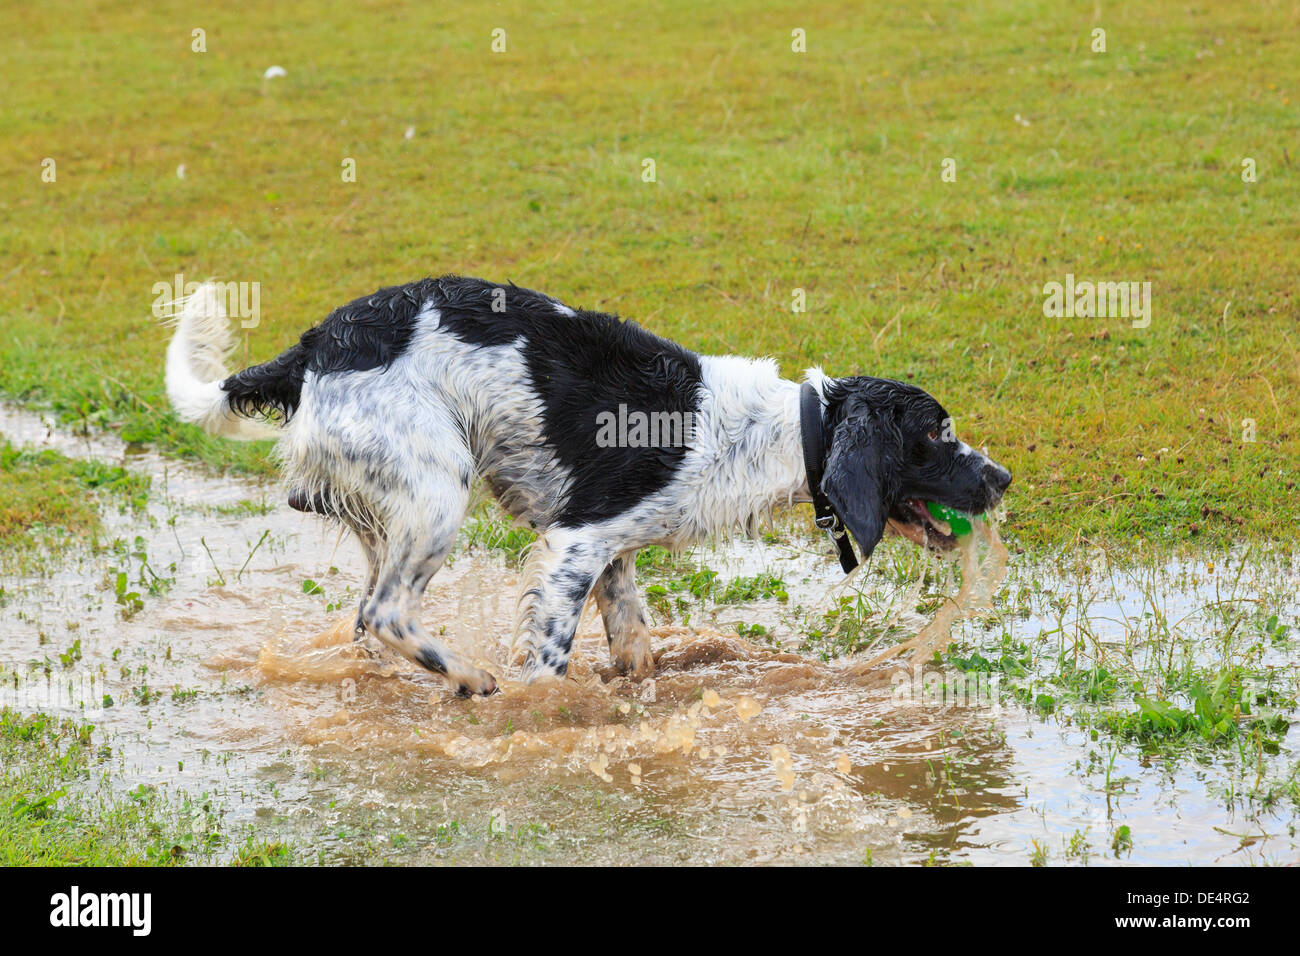 Soaking wet black and White English Springer Spaniel dog running in a puddle of water to retrieve a ball. England, Stock Photo